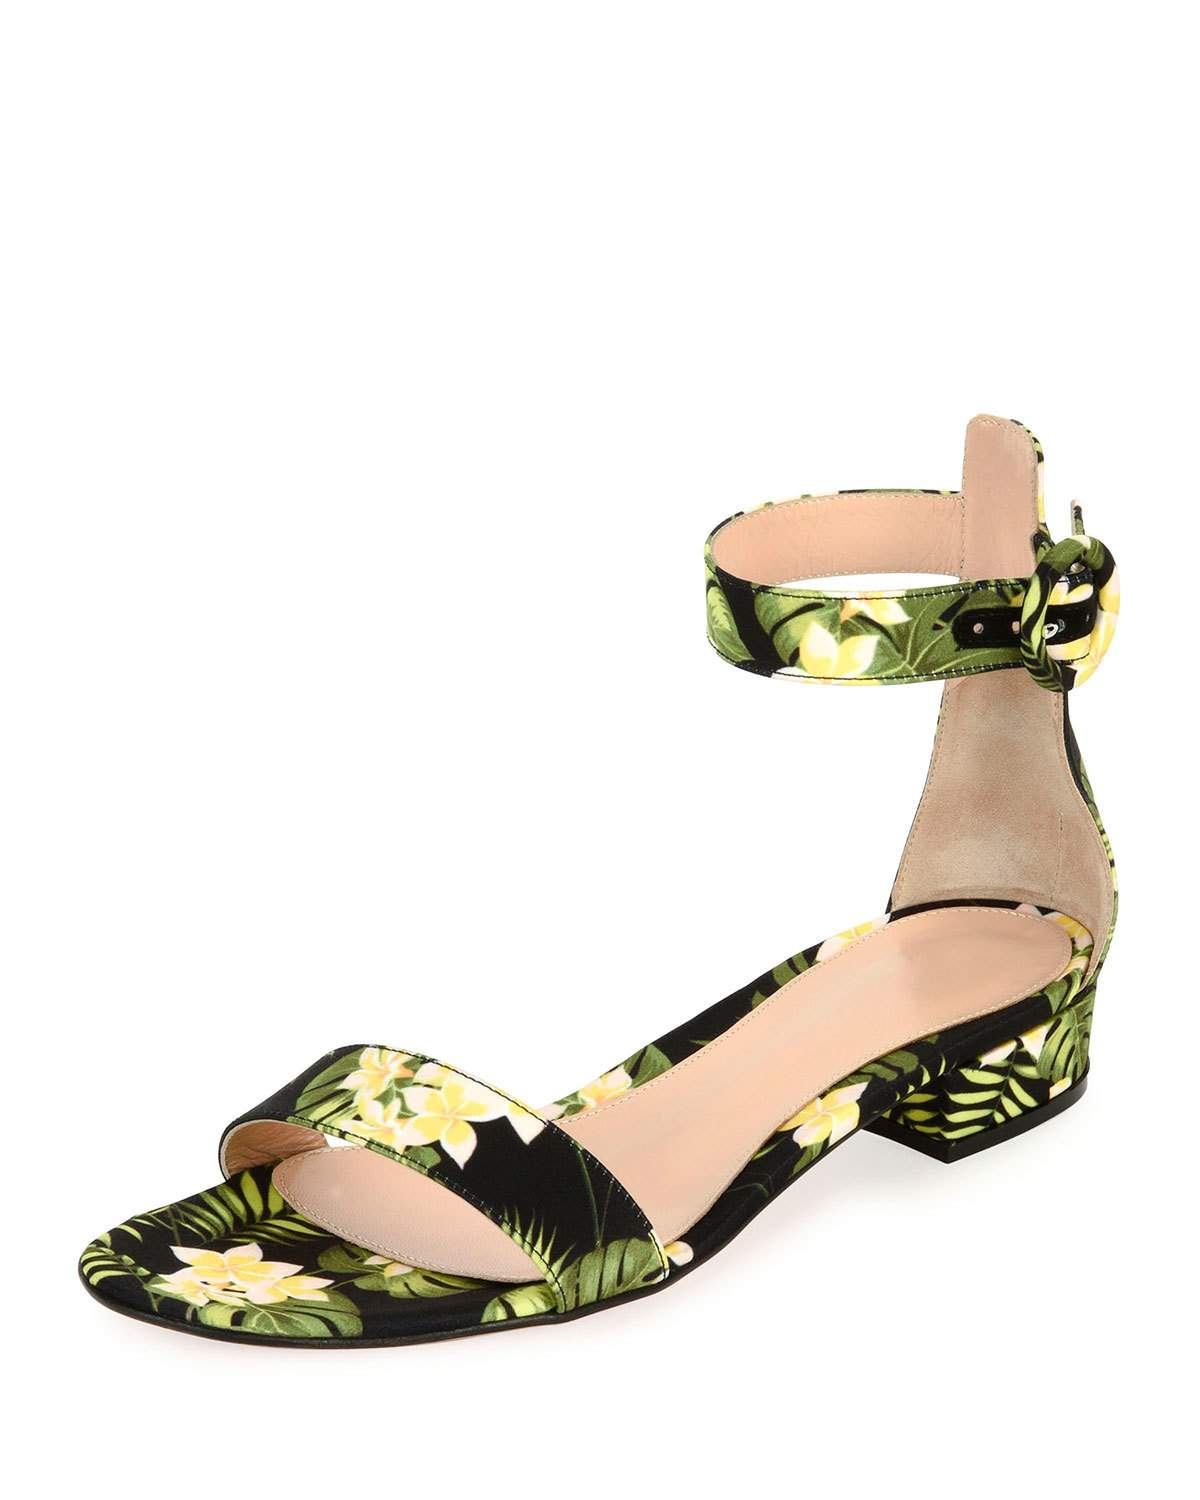 Gianvito Rossi Lola Flat Floral Ankle Wrap Womens Sandals